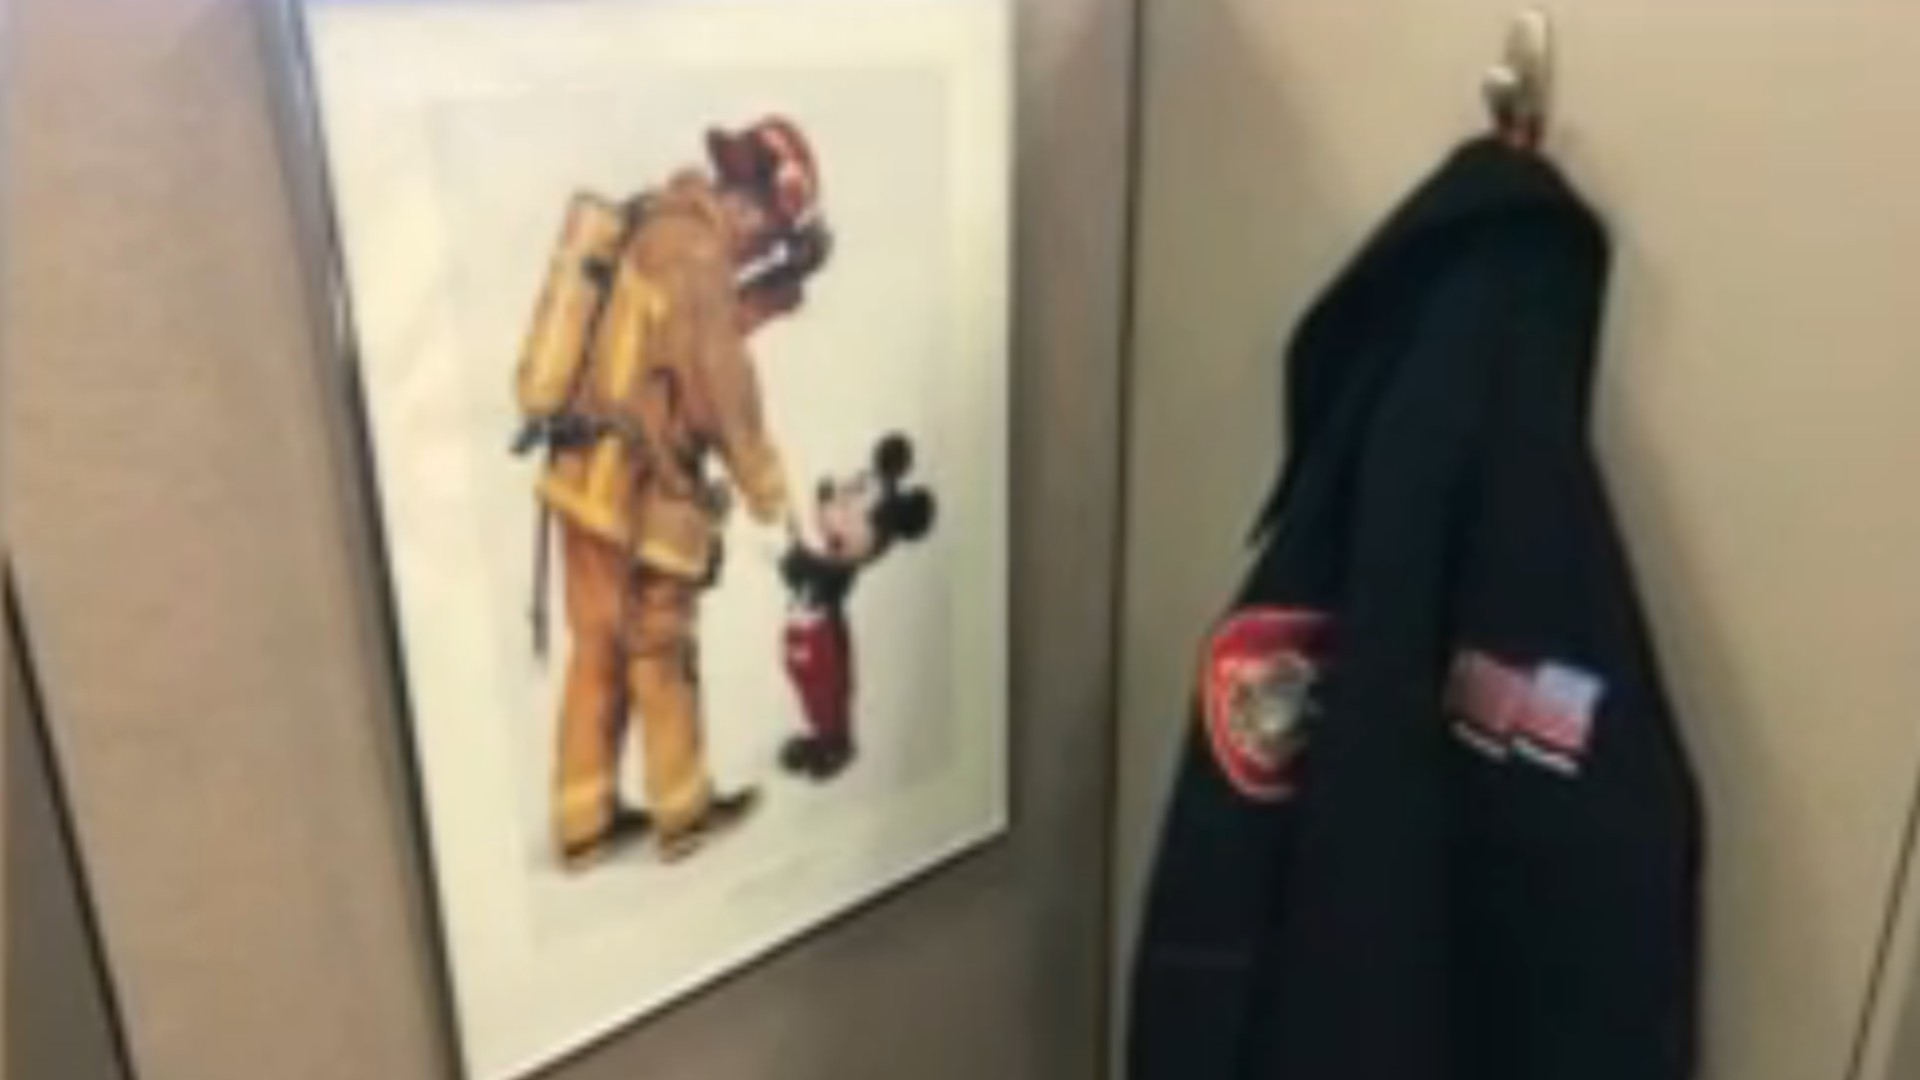 Anaheim Fire Capt. David Baker is pictured with Mickey Mouse in a 1993 photo. (City of Anaheim)